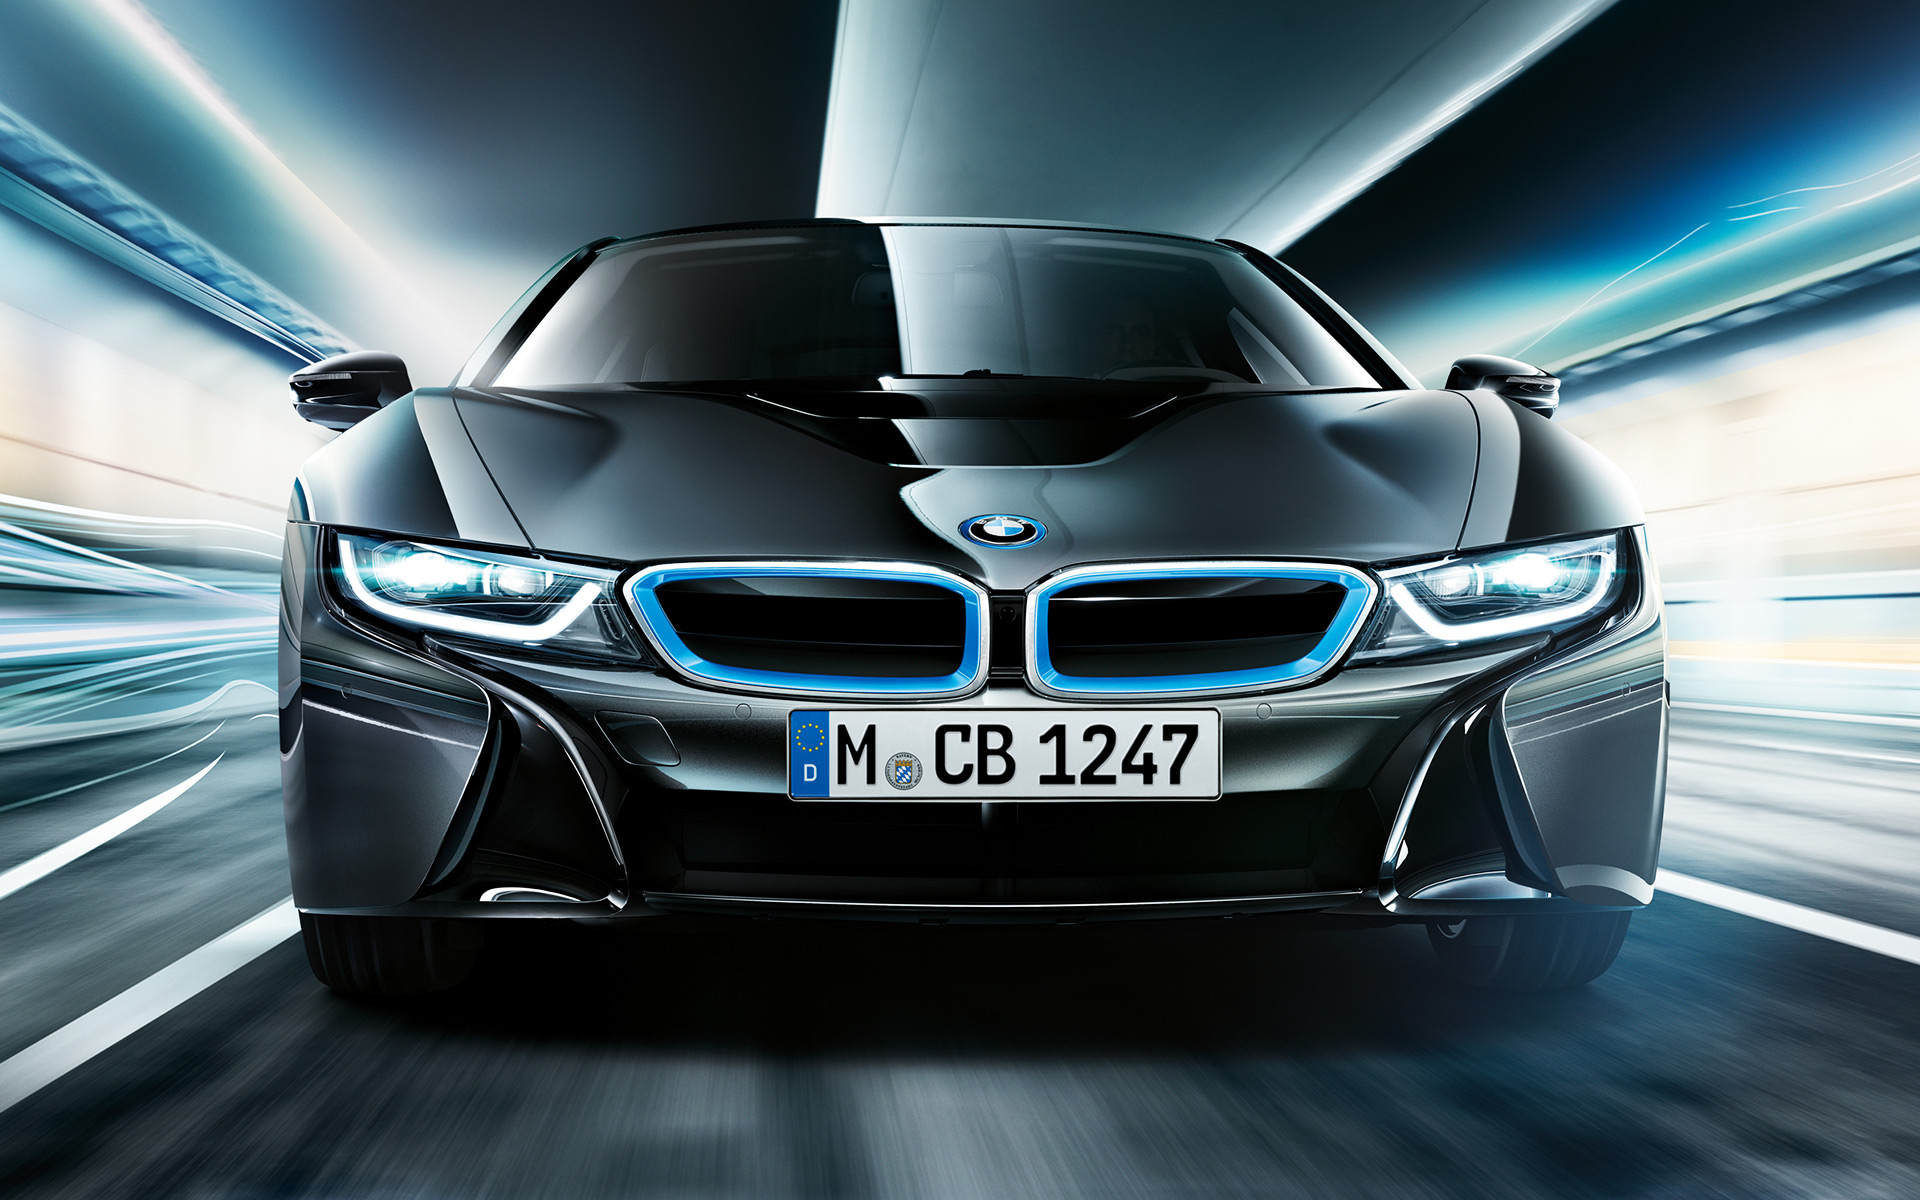 BMW i8: The Hybrid Sports Car has Arrived on Indian Shores